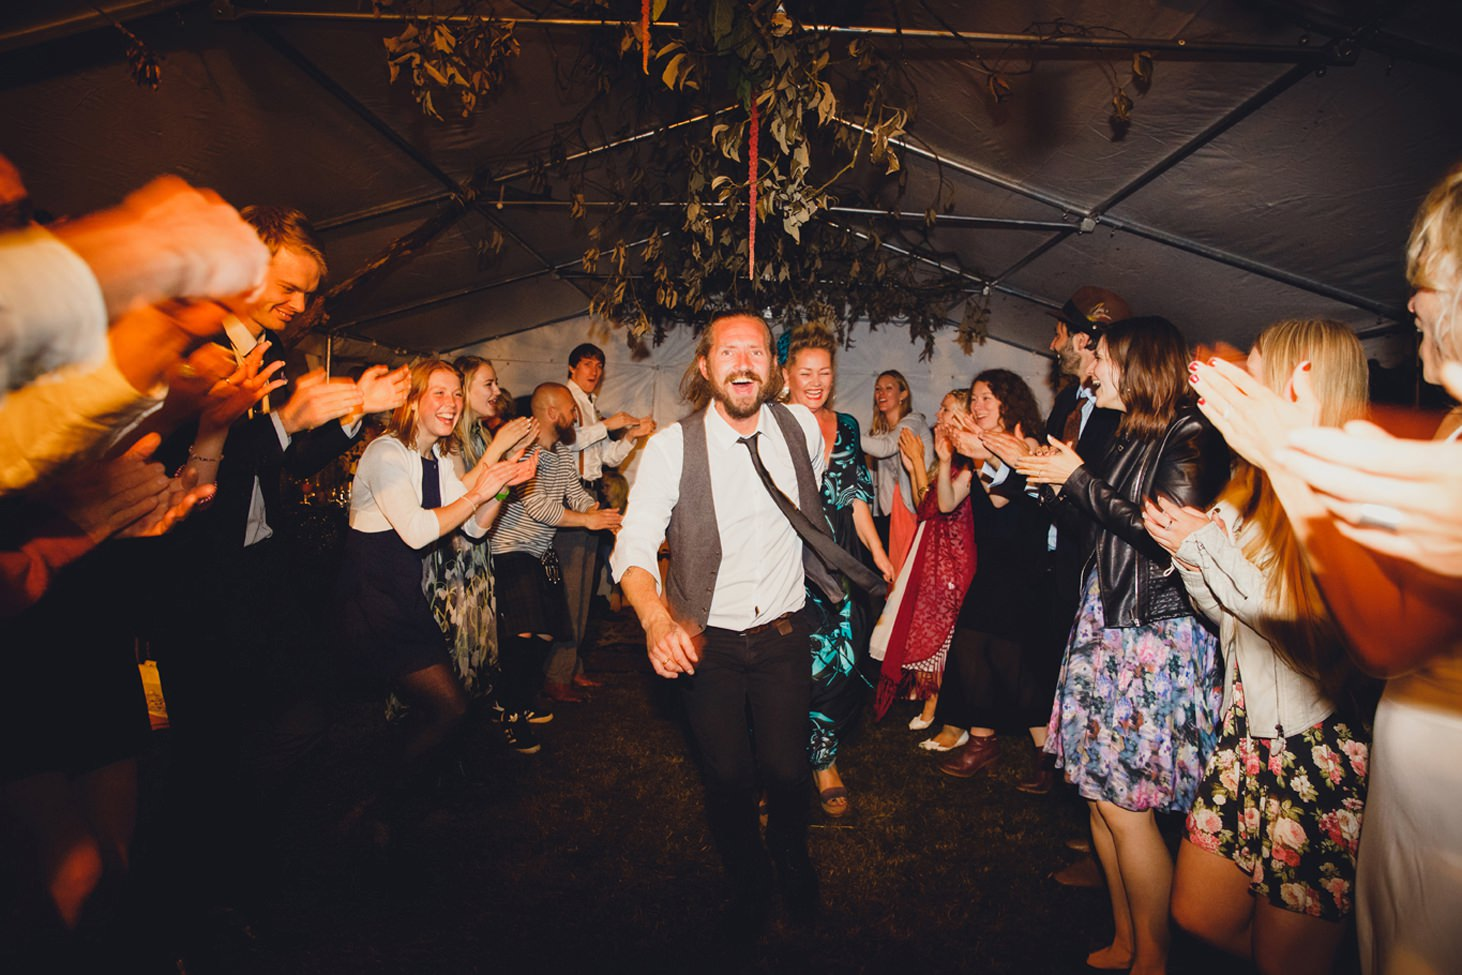 mount stuart wedding photography fun celtic dancing